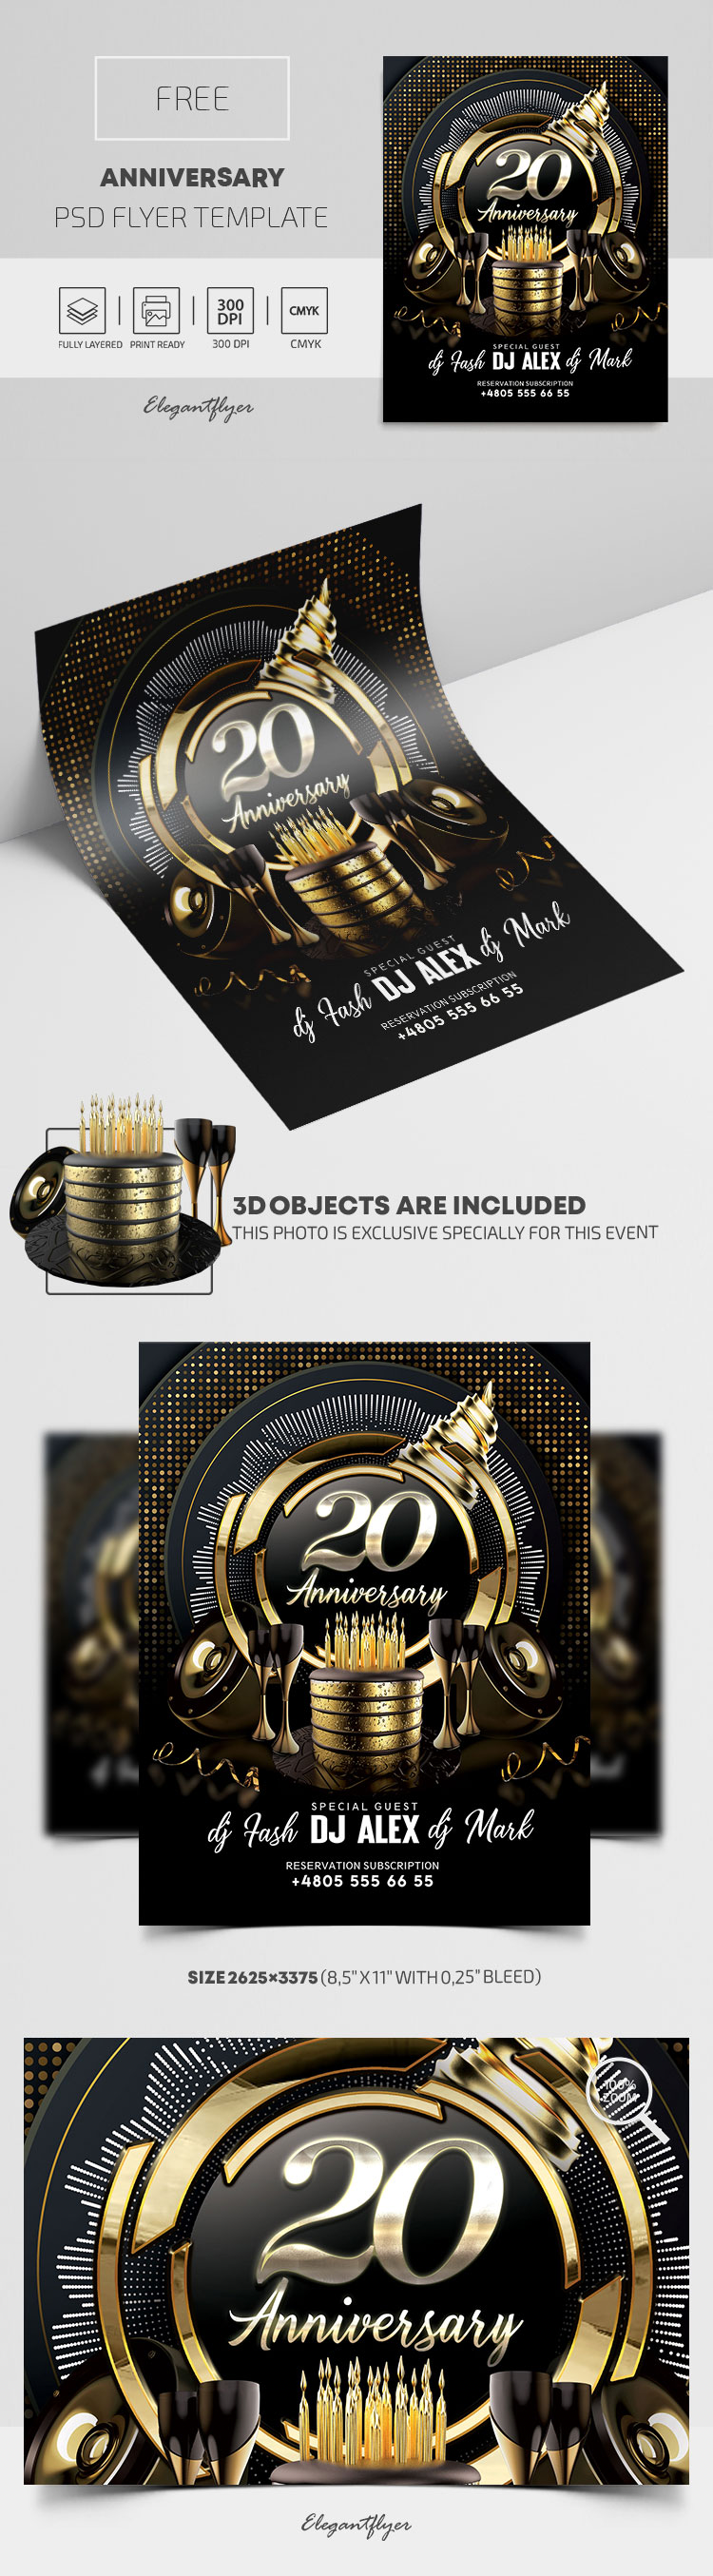 Anniversary – Free PSD Flyer Template